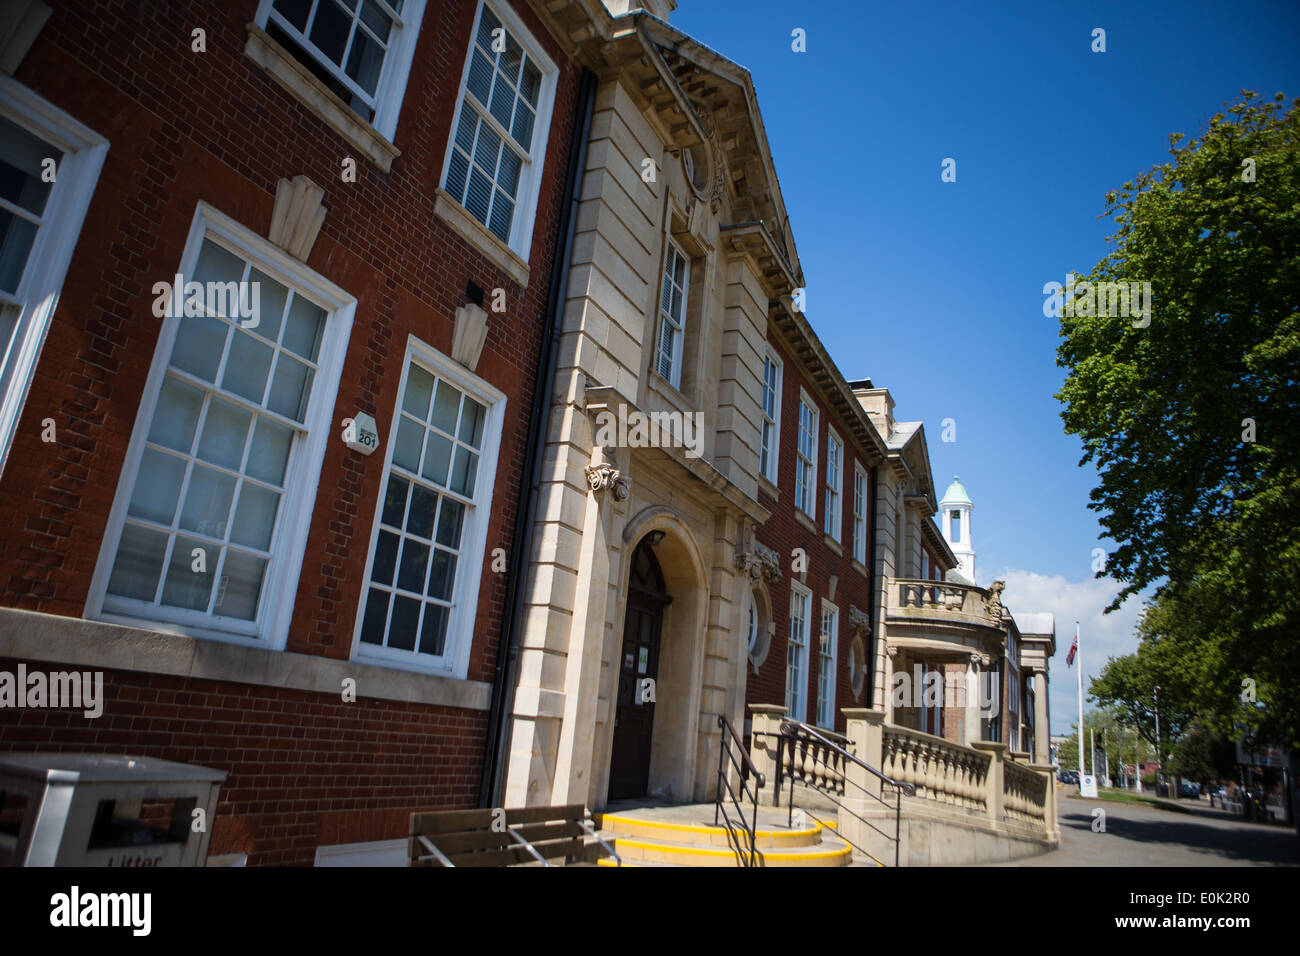 Worthing Museum and art Gallery - Stock Image